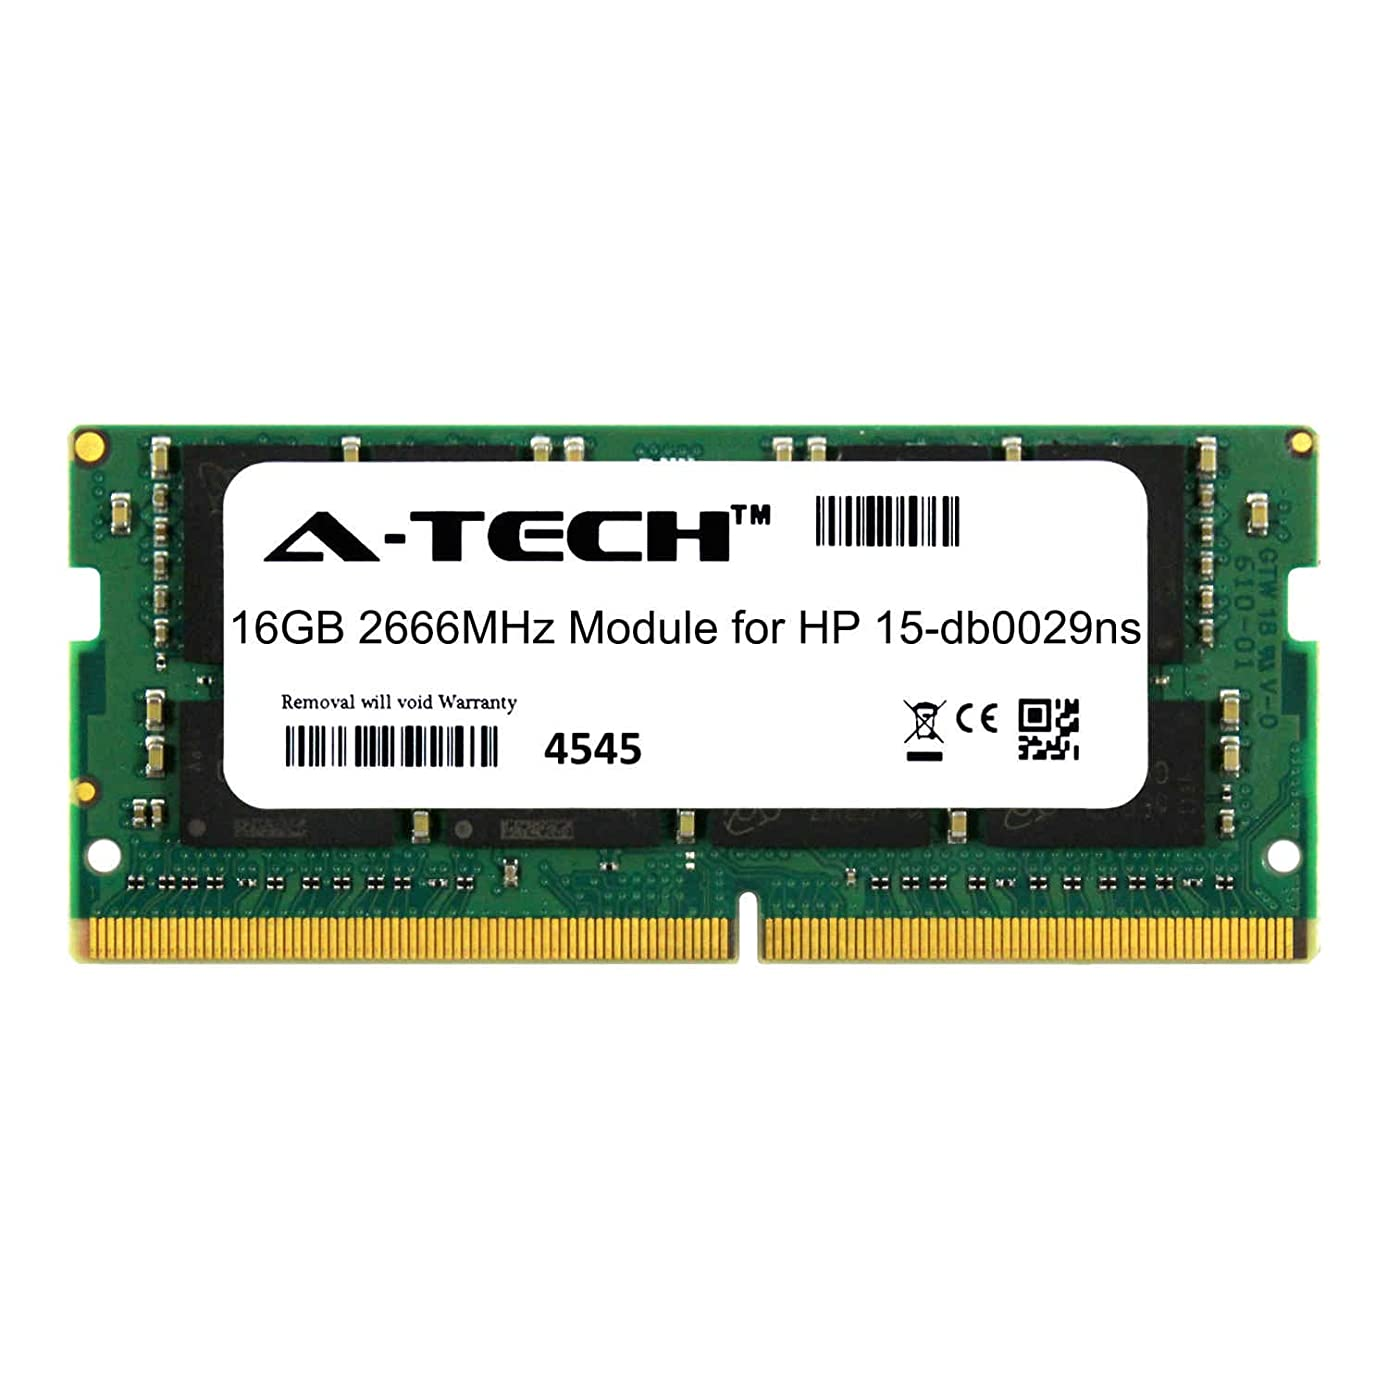 A-Tech 16GB Module for HP 15-db0029ns Laptop & Notebook Compatible DDR4 2666Mhz Memory Ram (ATMS381917A25832X1)